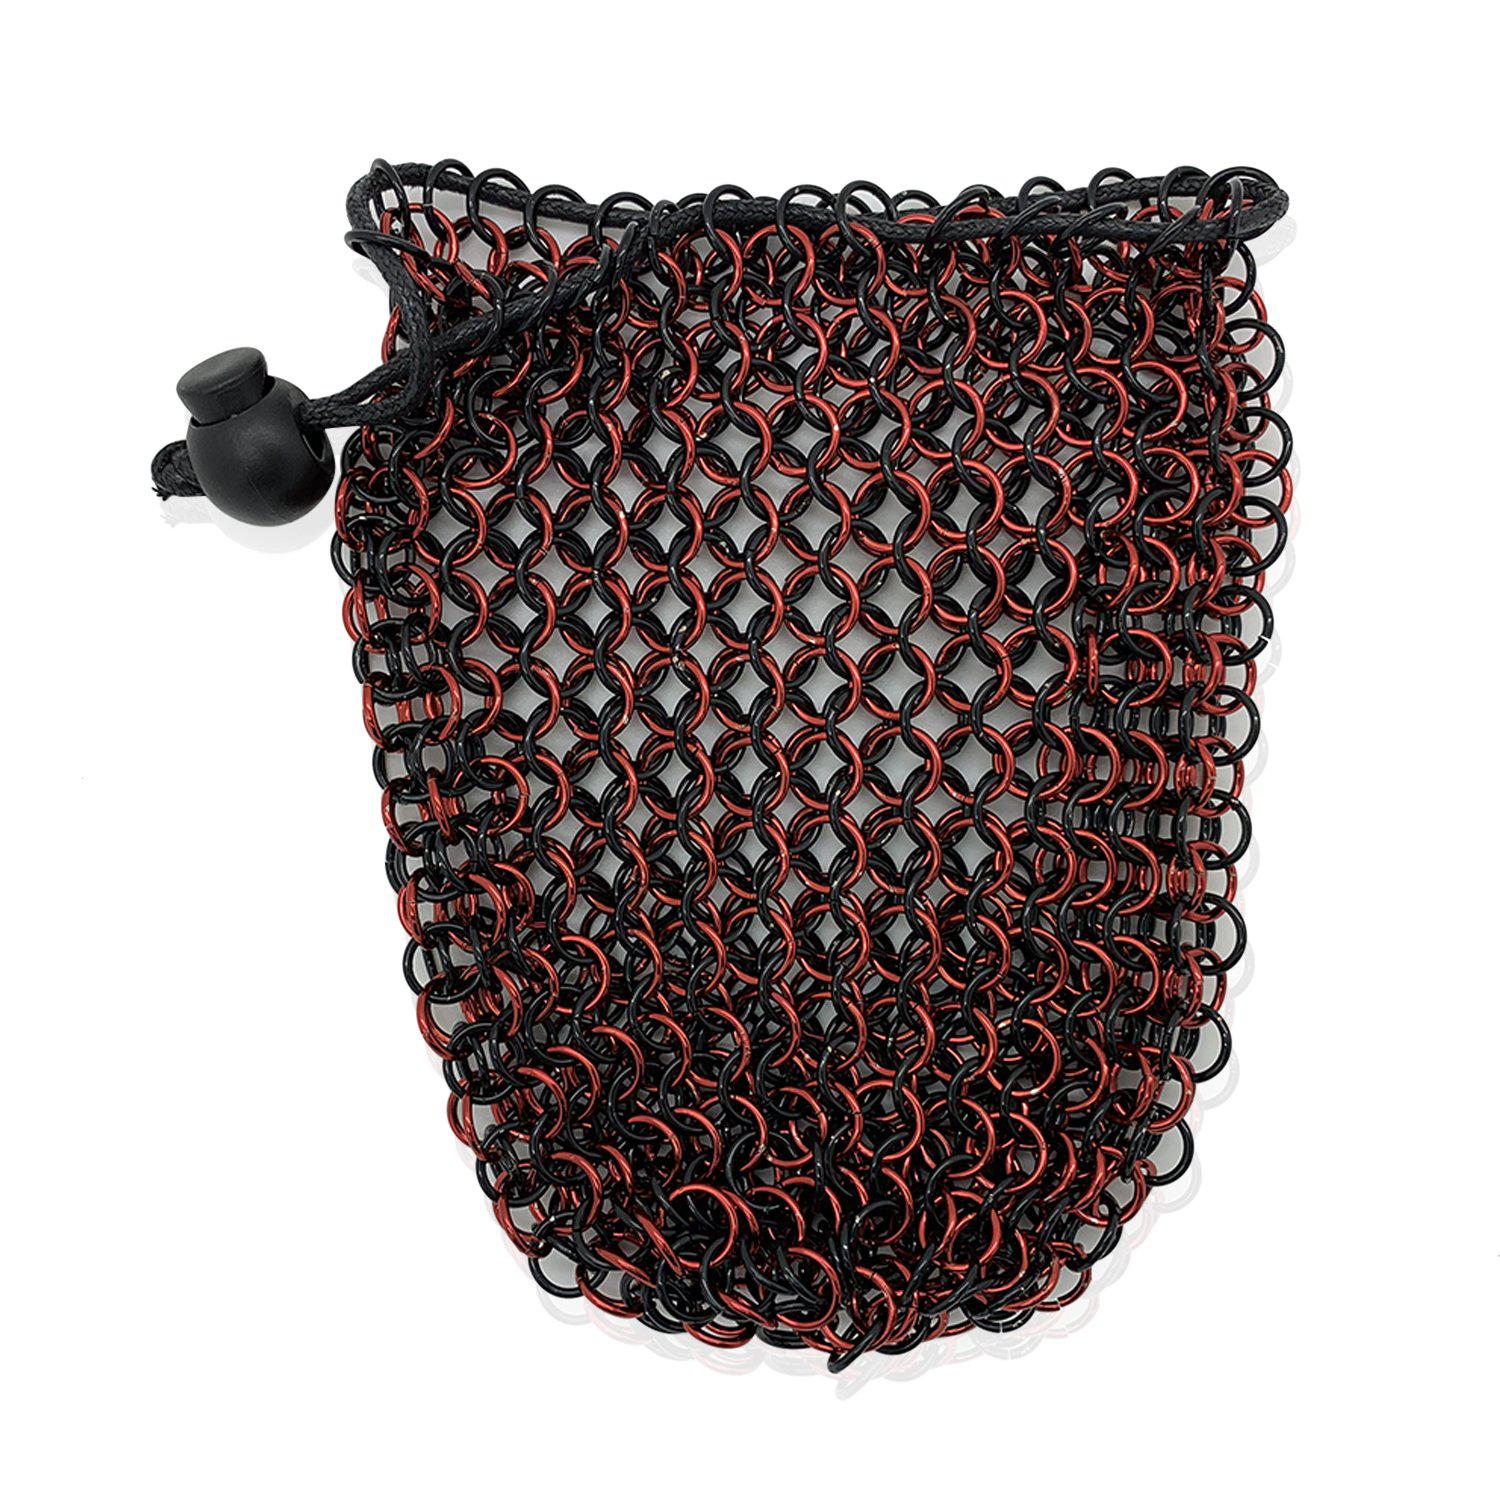 Stainless Steel Chainmail Dice Bag - Red & Black by Norse Foundry